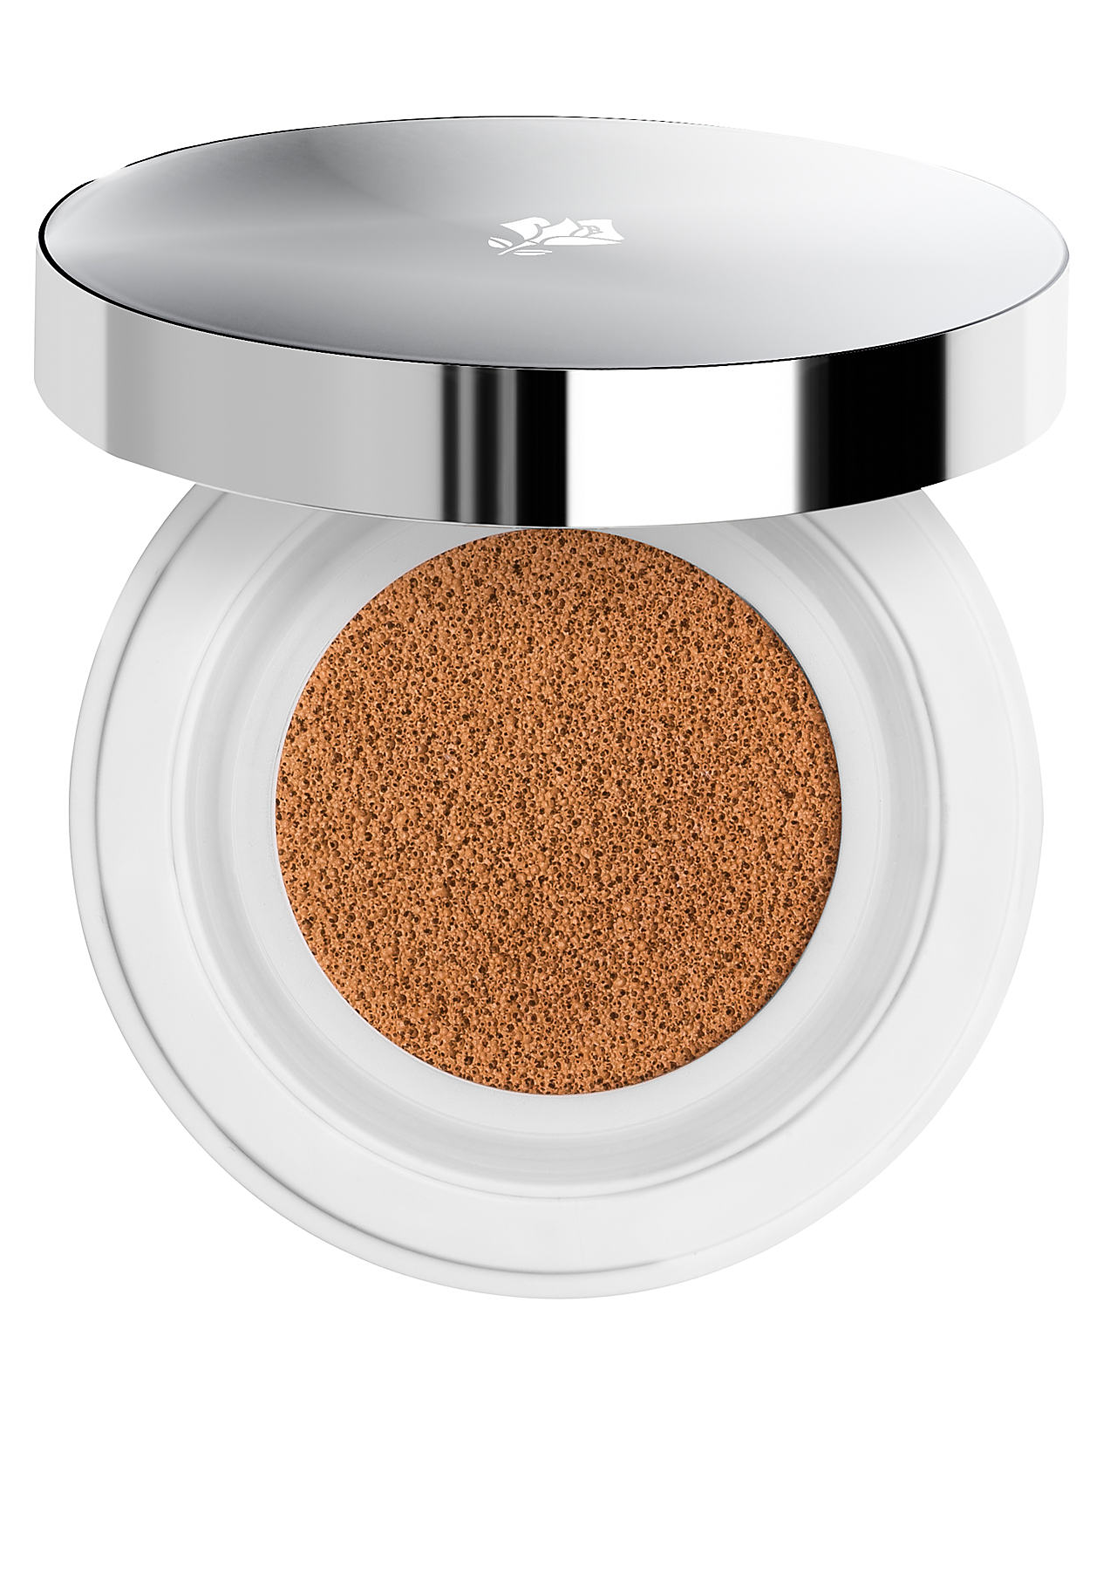 Lancome Miracle Cushion Foundation, 03 Beige Peche